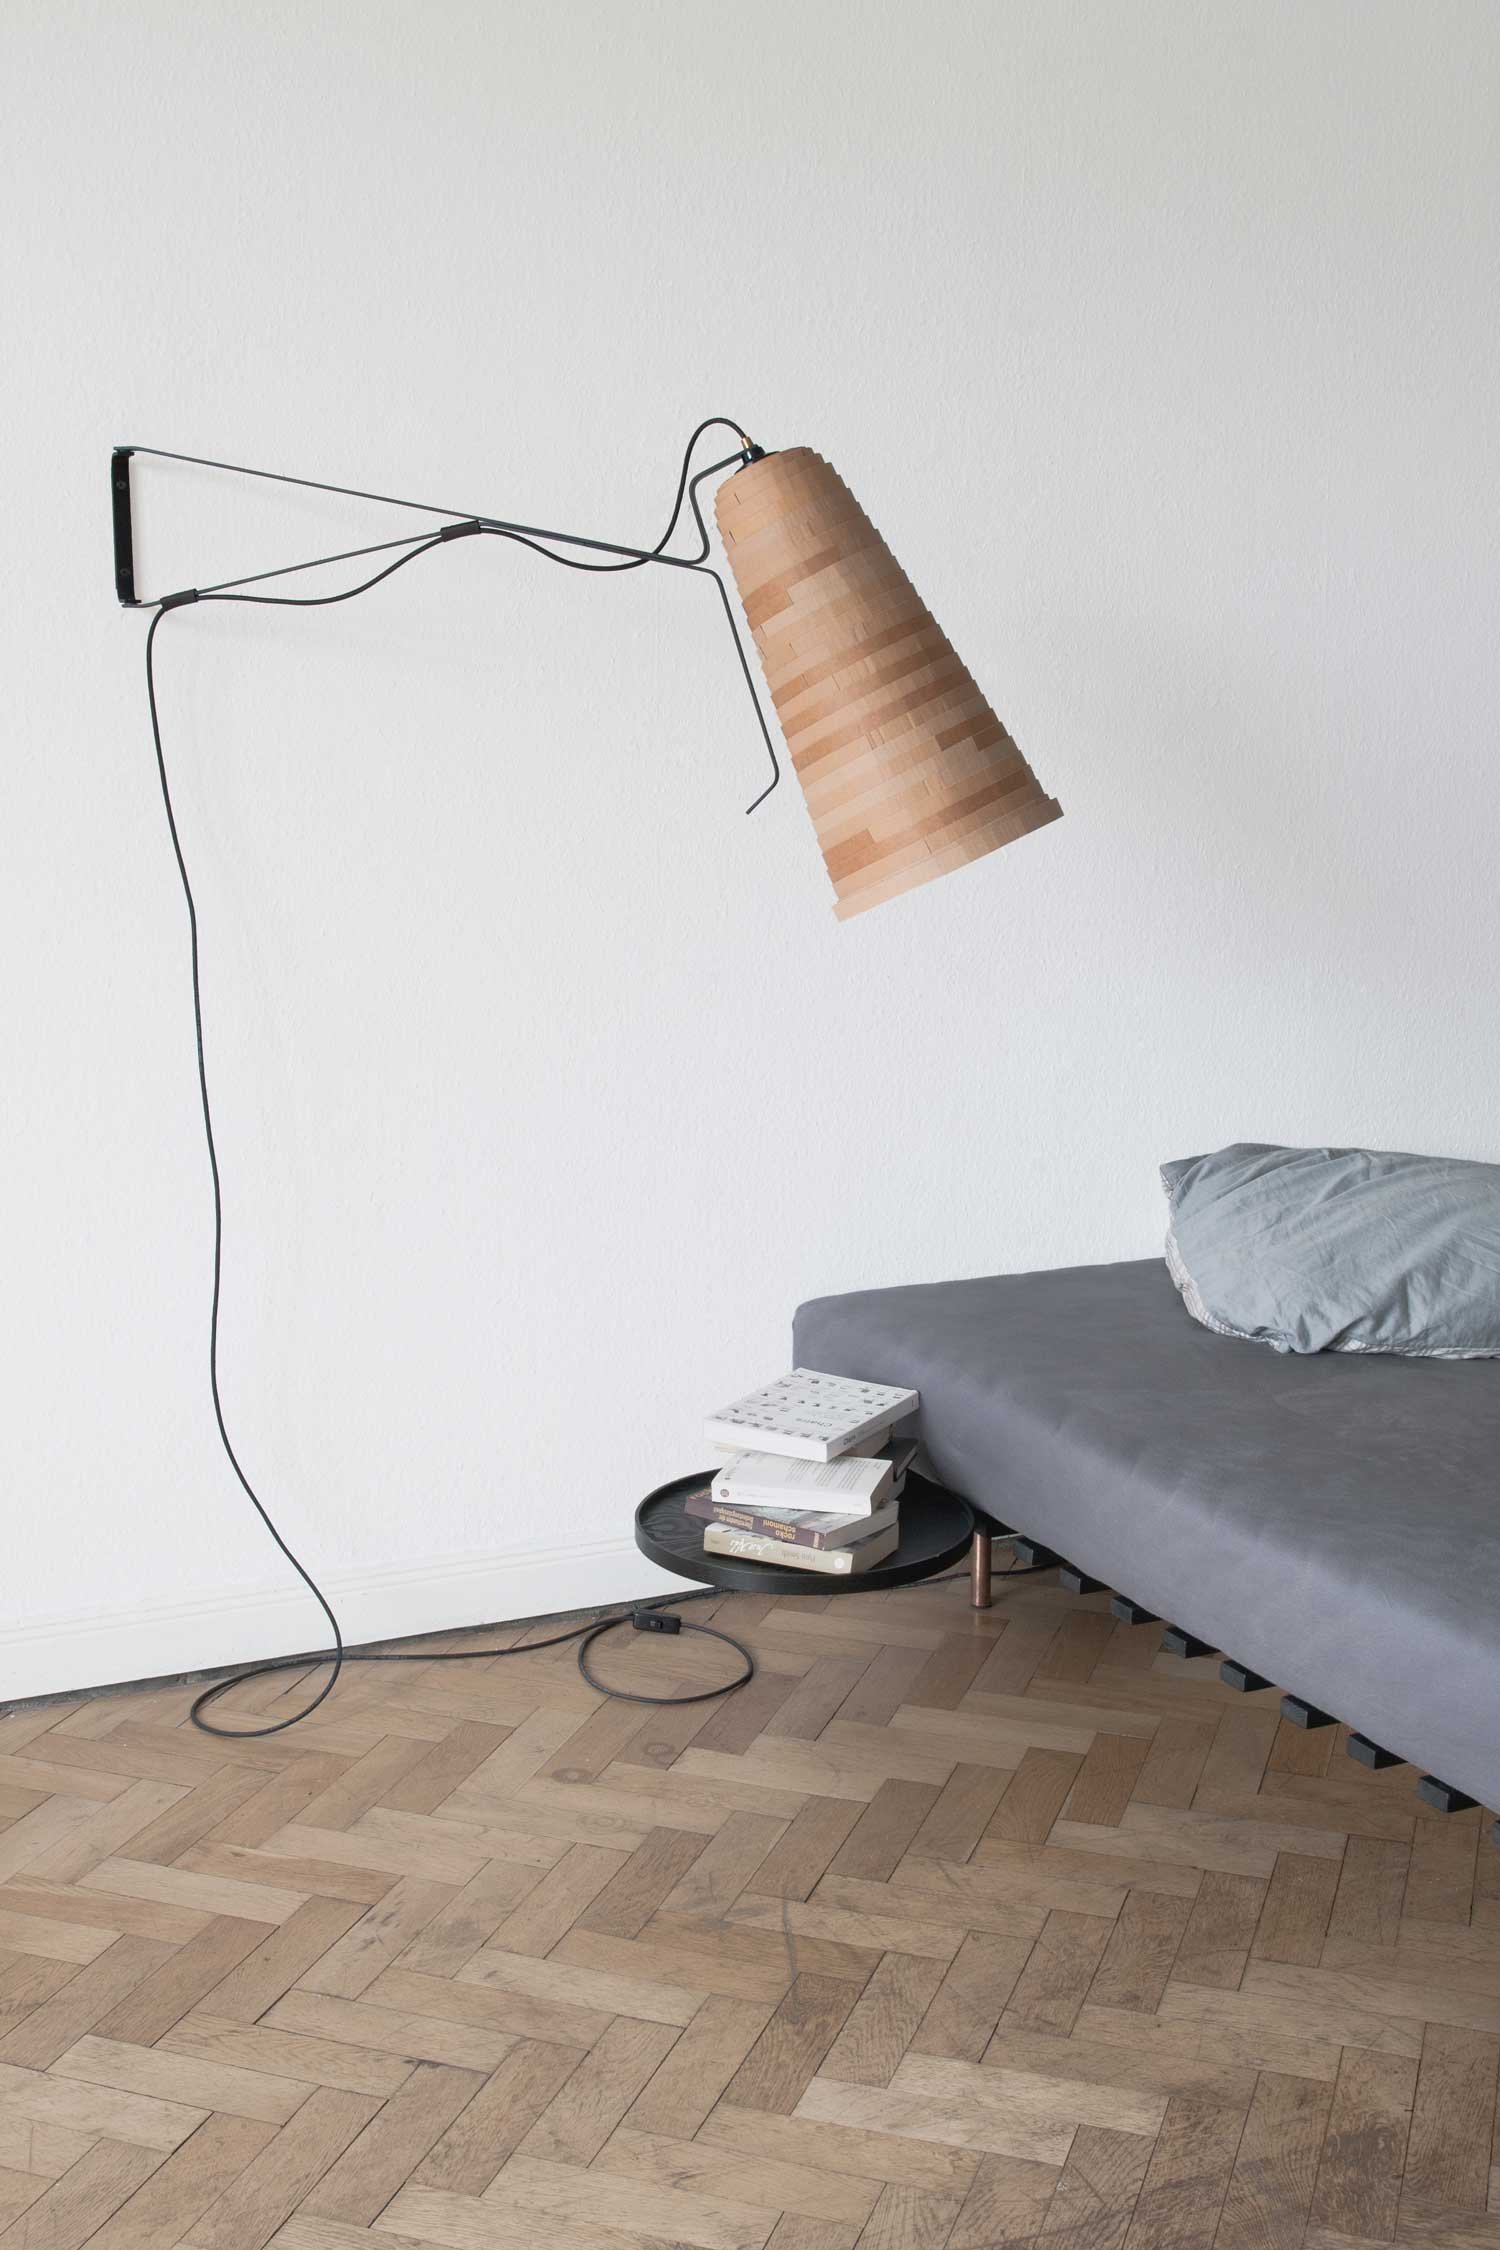 Telebeute Light by Herrwolke at IMM Cologne 2015 | Yellowtrace